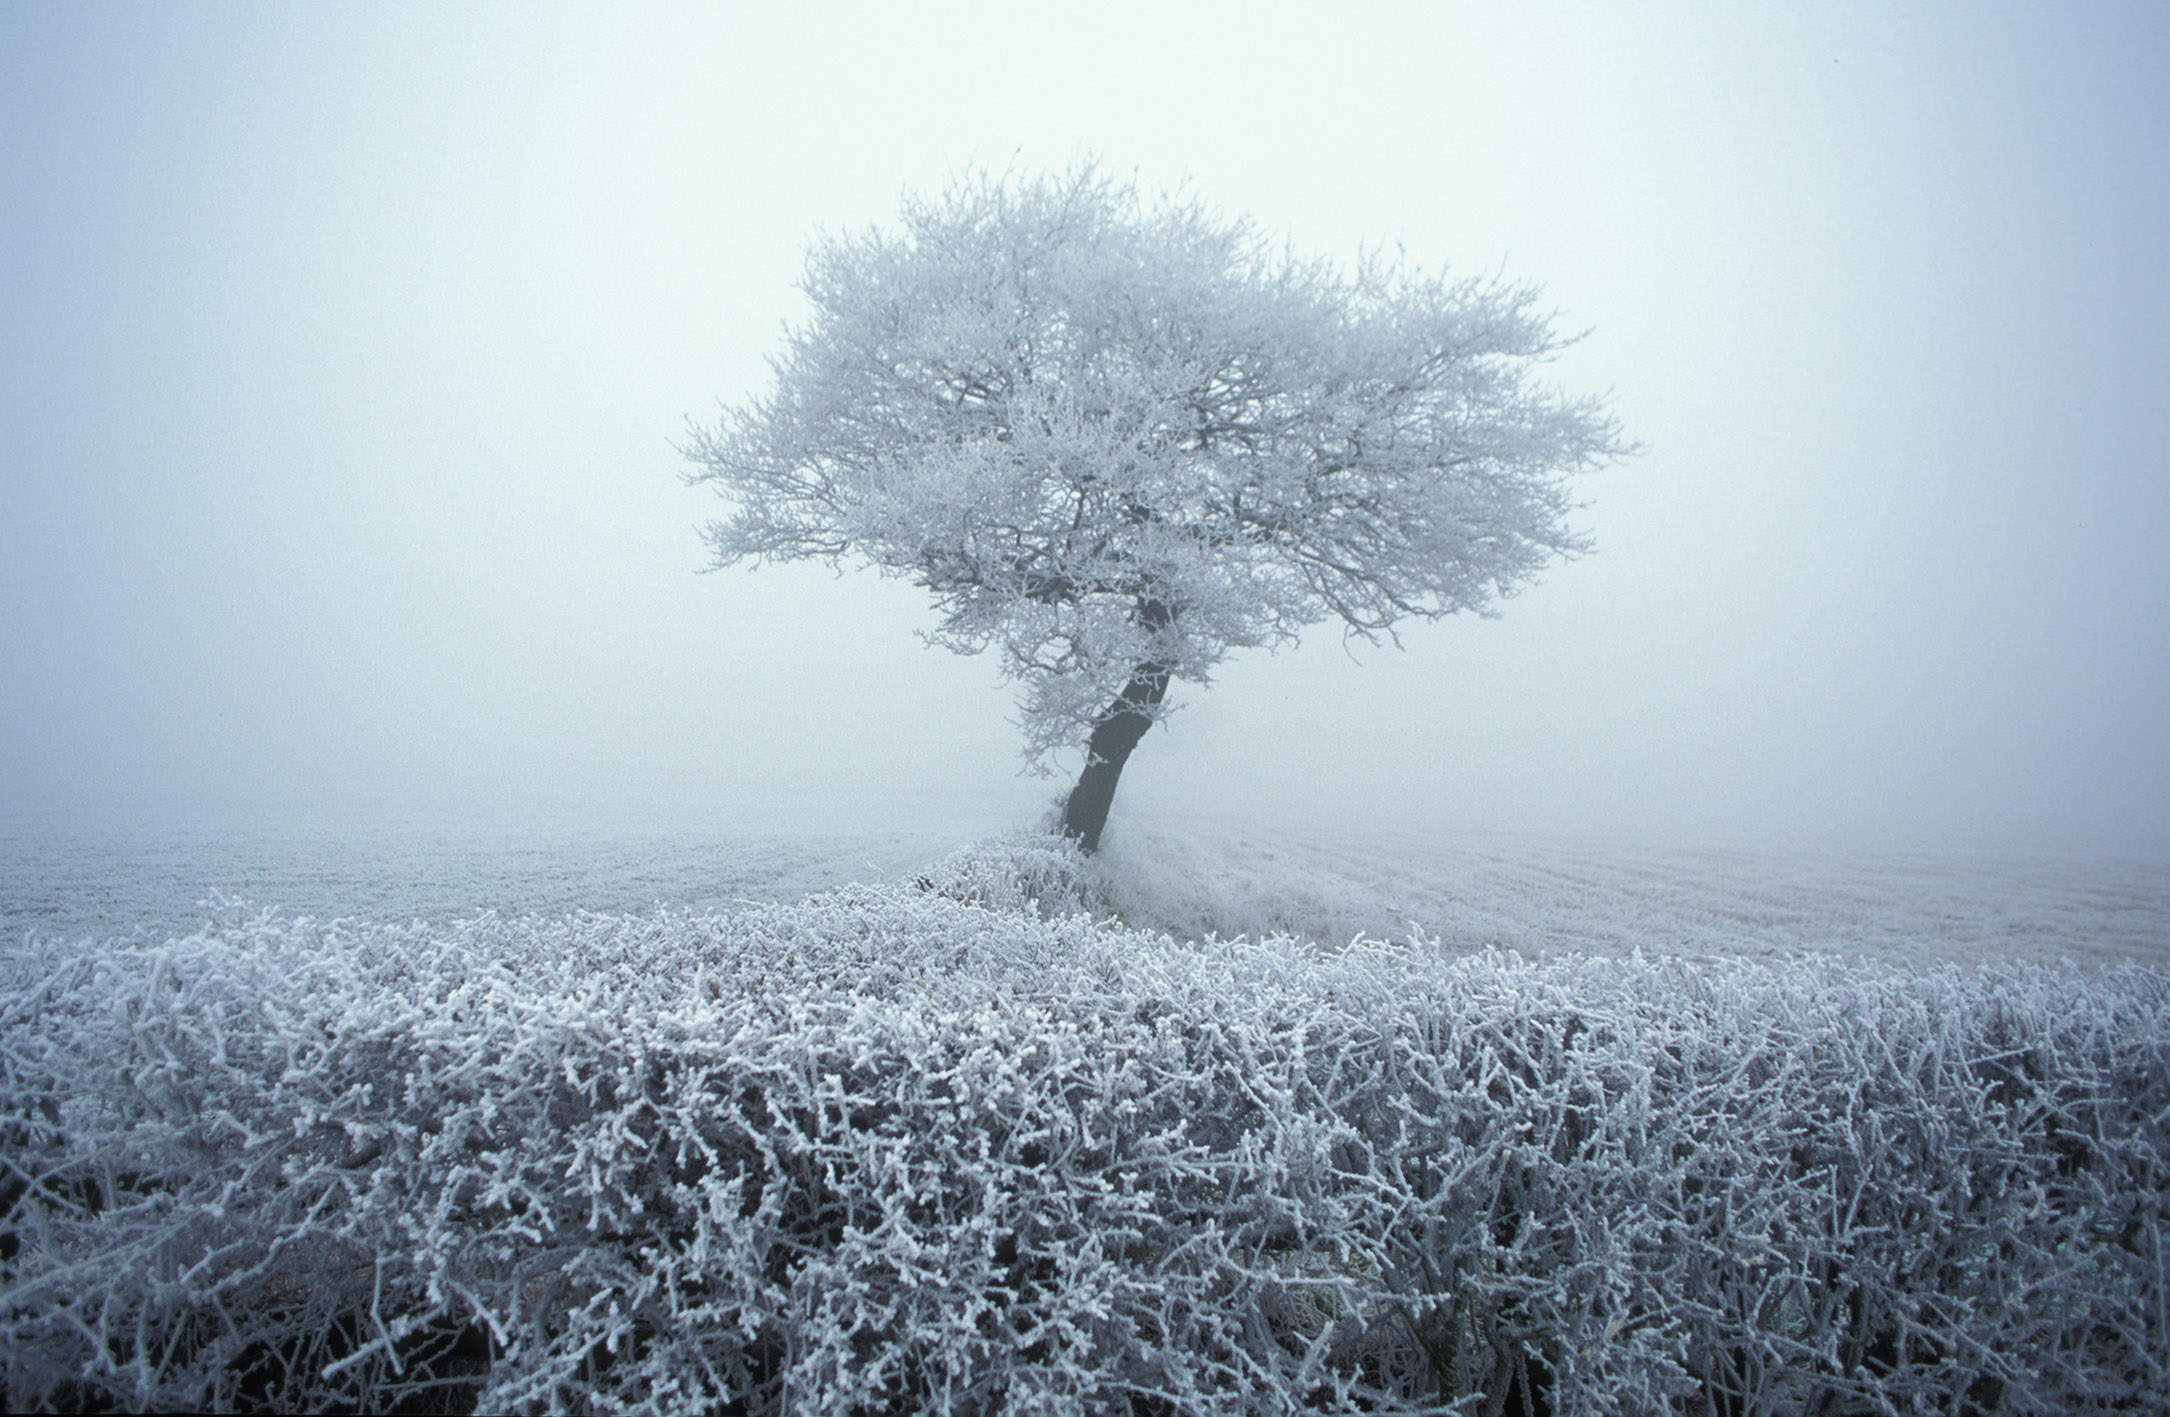 A time to break down, and a time to build: the beauty of midwinter